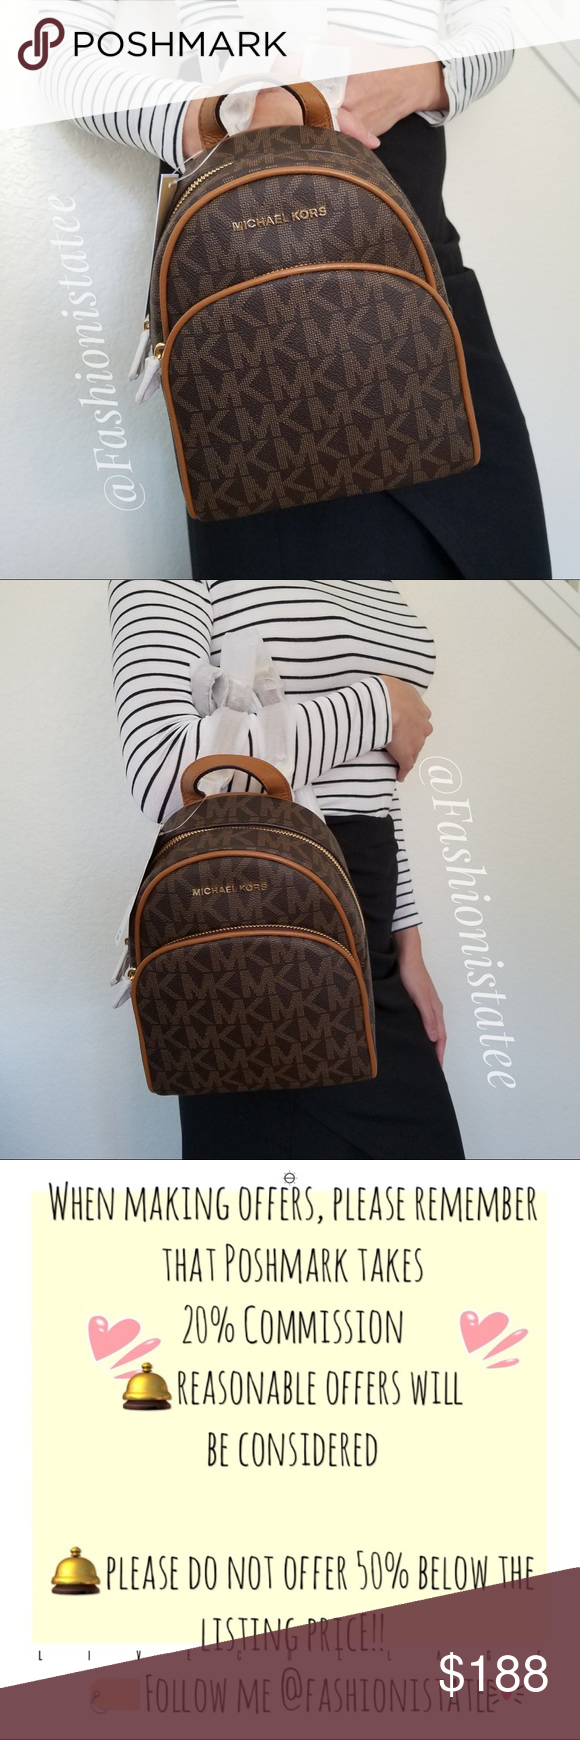 18c7bc2e6fd0 NWT MICHAEL KORS ABBEY BROWN ACORN BACKPACK SMALL New With Tag 100%  Authentic This list